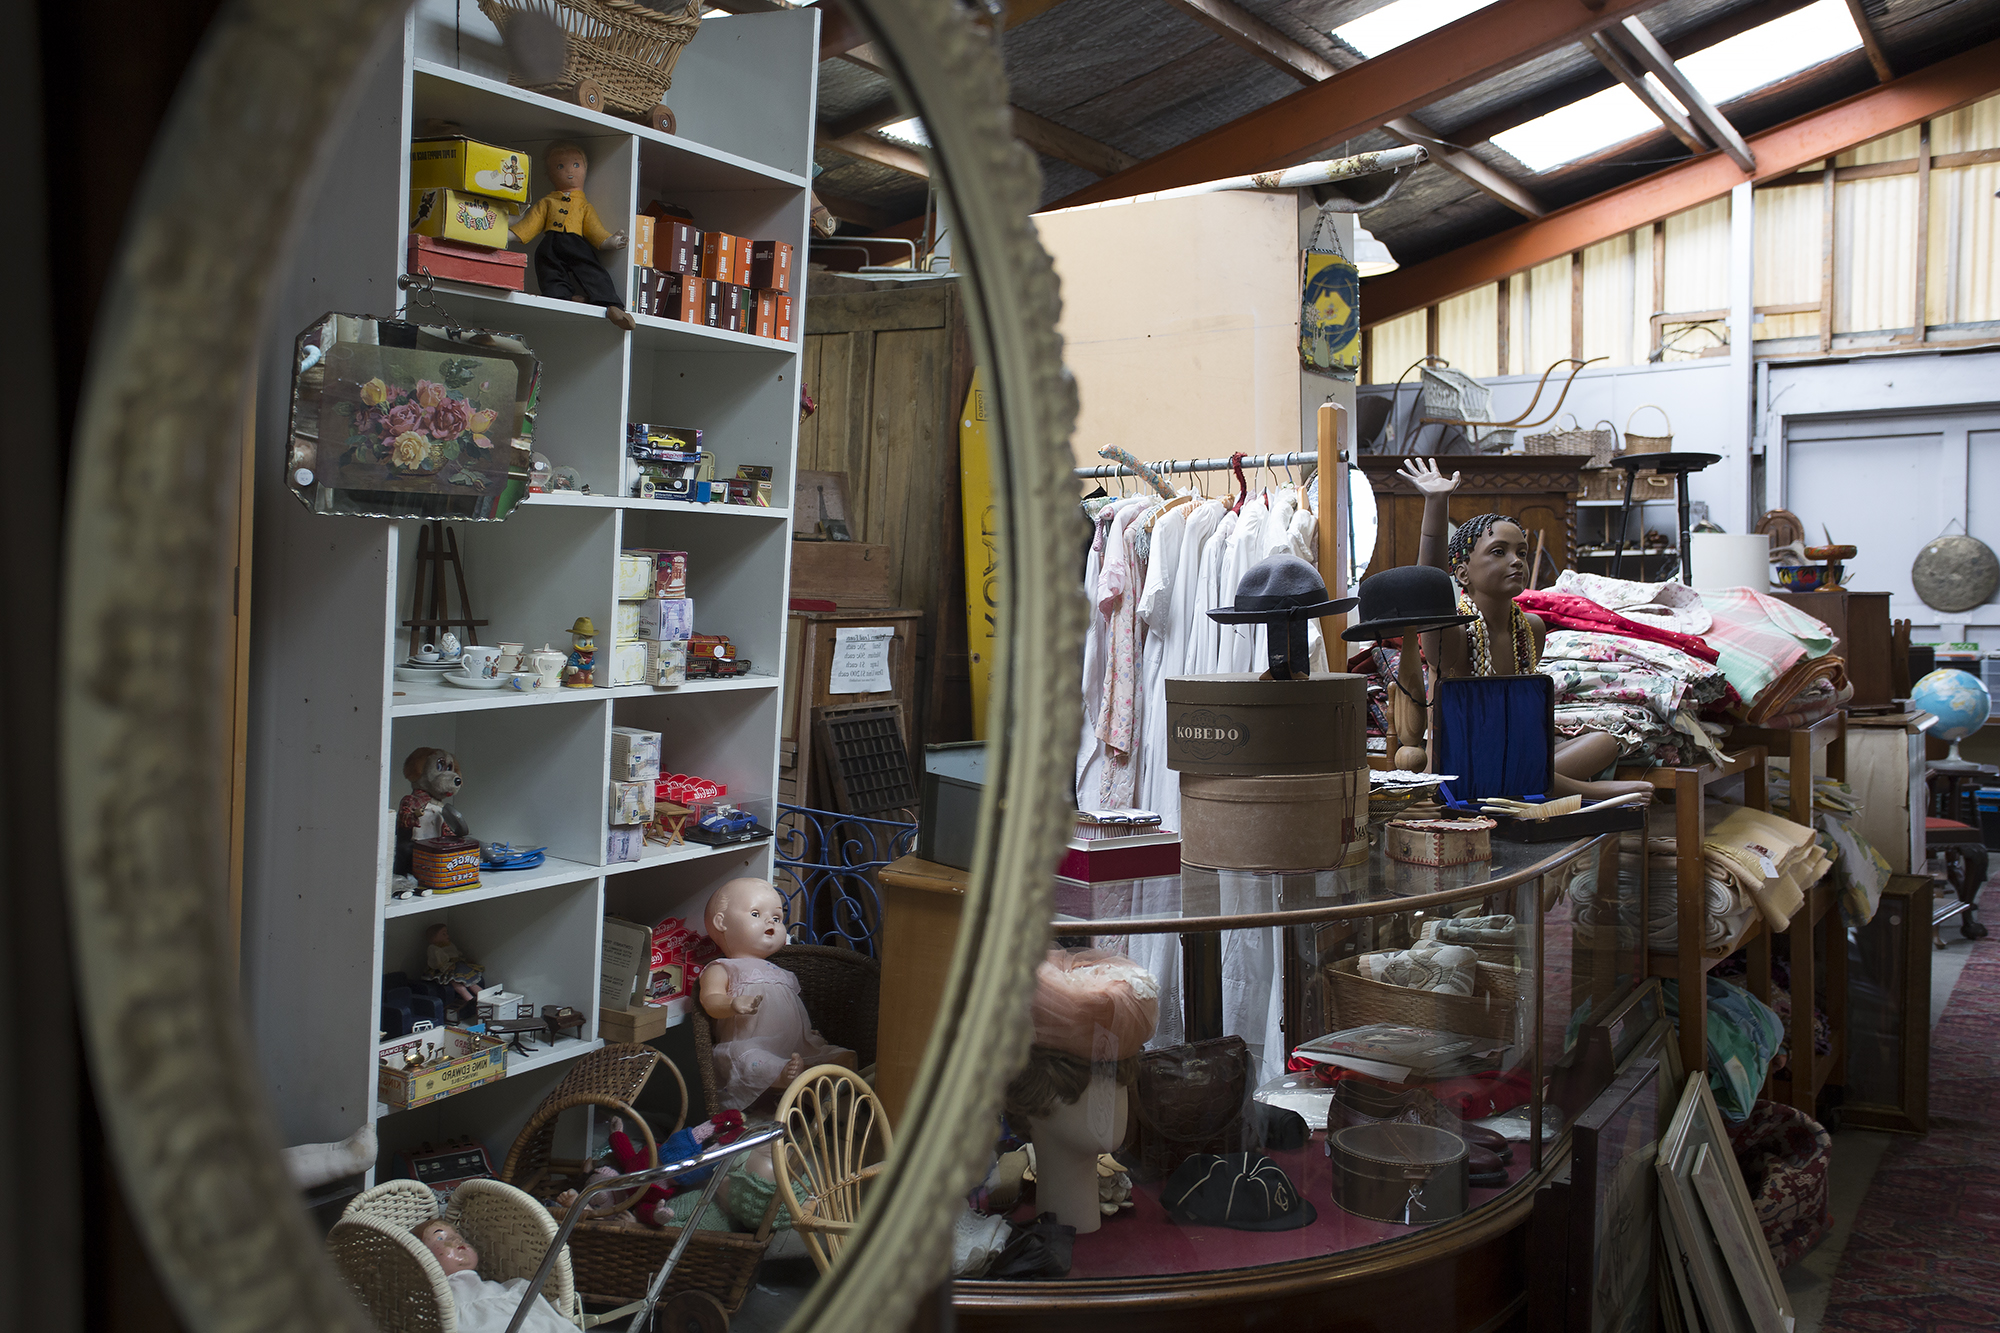 When I was younger, with my passion for photography blooming I would approach Antique shop owners and ask if they would mind if I took some pictures inside their amazing room filled still-lives. I would feel like a five year old in a toy shop excitedly getting high from the experience of capturing images bathed in Renaissance light.